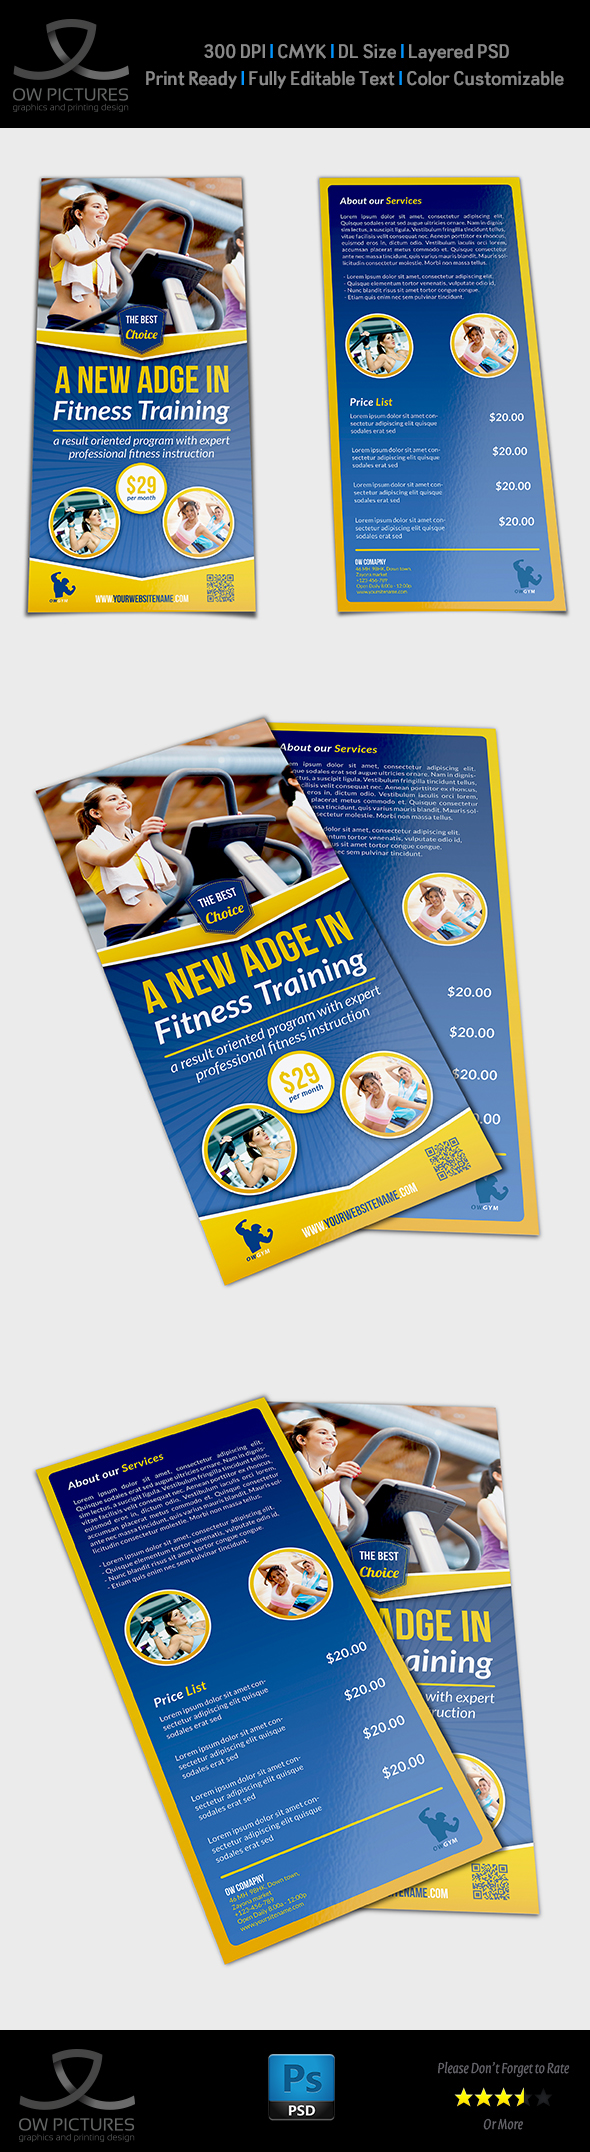 DL Fitness Flyer Template On Behance - Dl size flyer template